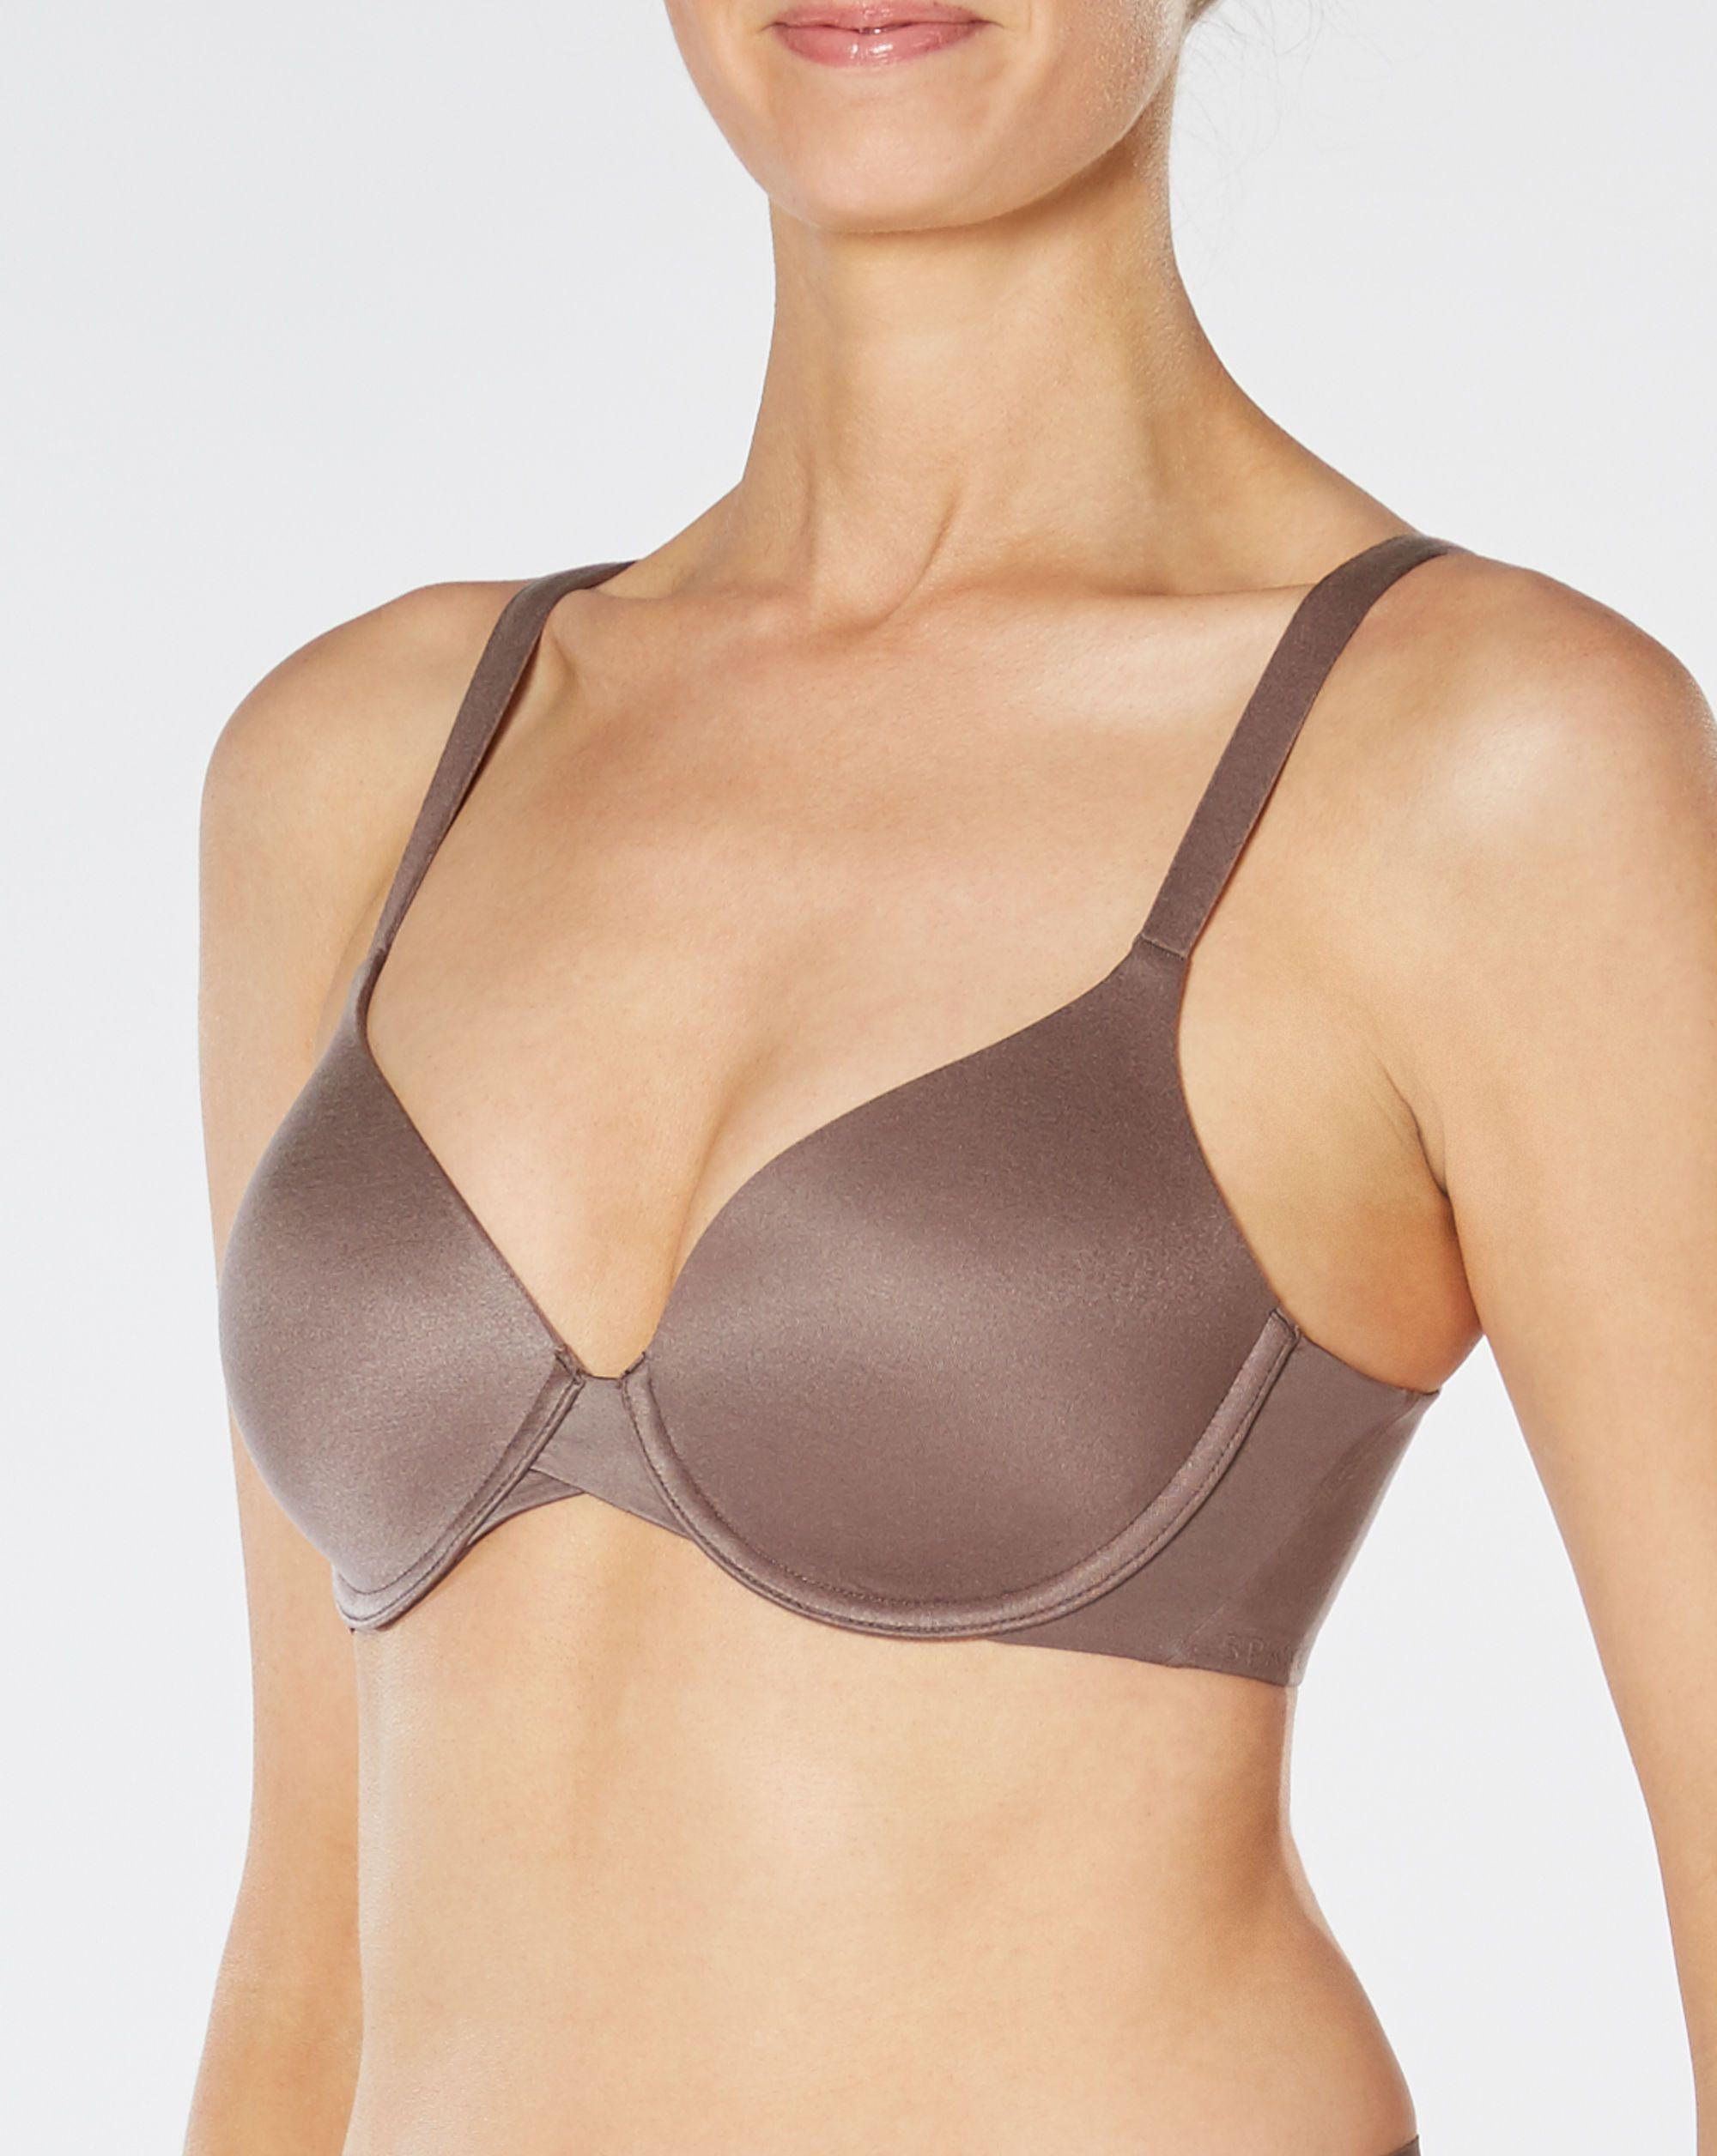 58b906afe7b12 Spanx. Women s Pillow Cup Signature Full Coverage Bra